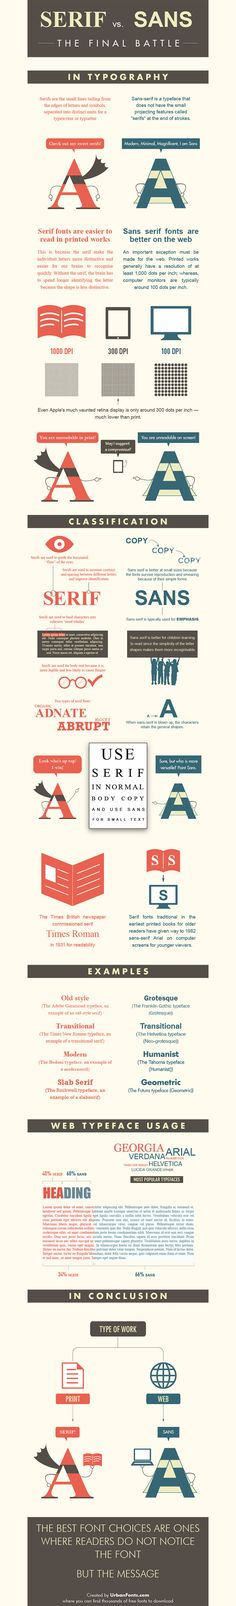 The Difference Between Serif And Sans-Serif Explained In One Infographic, and how to use them correctly.